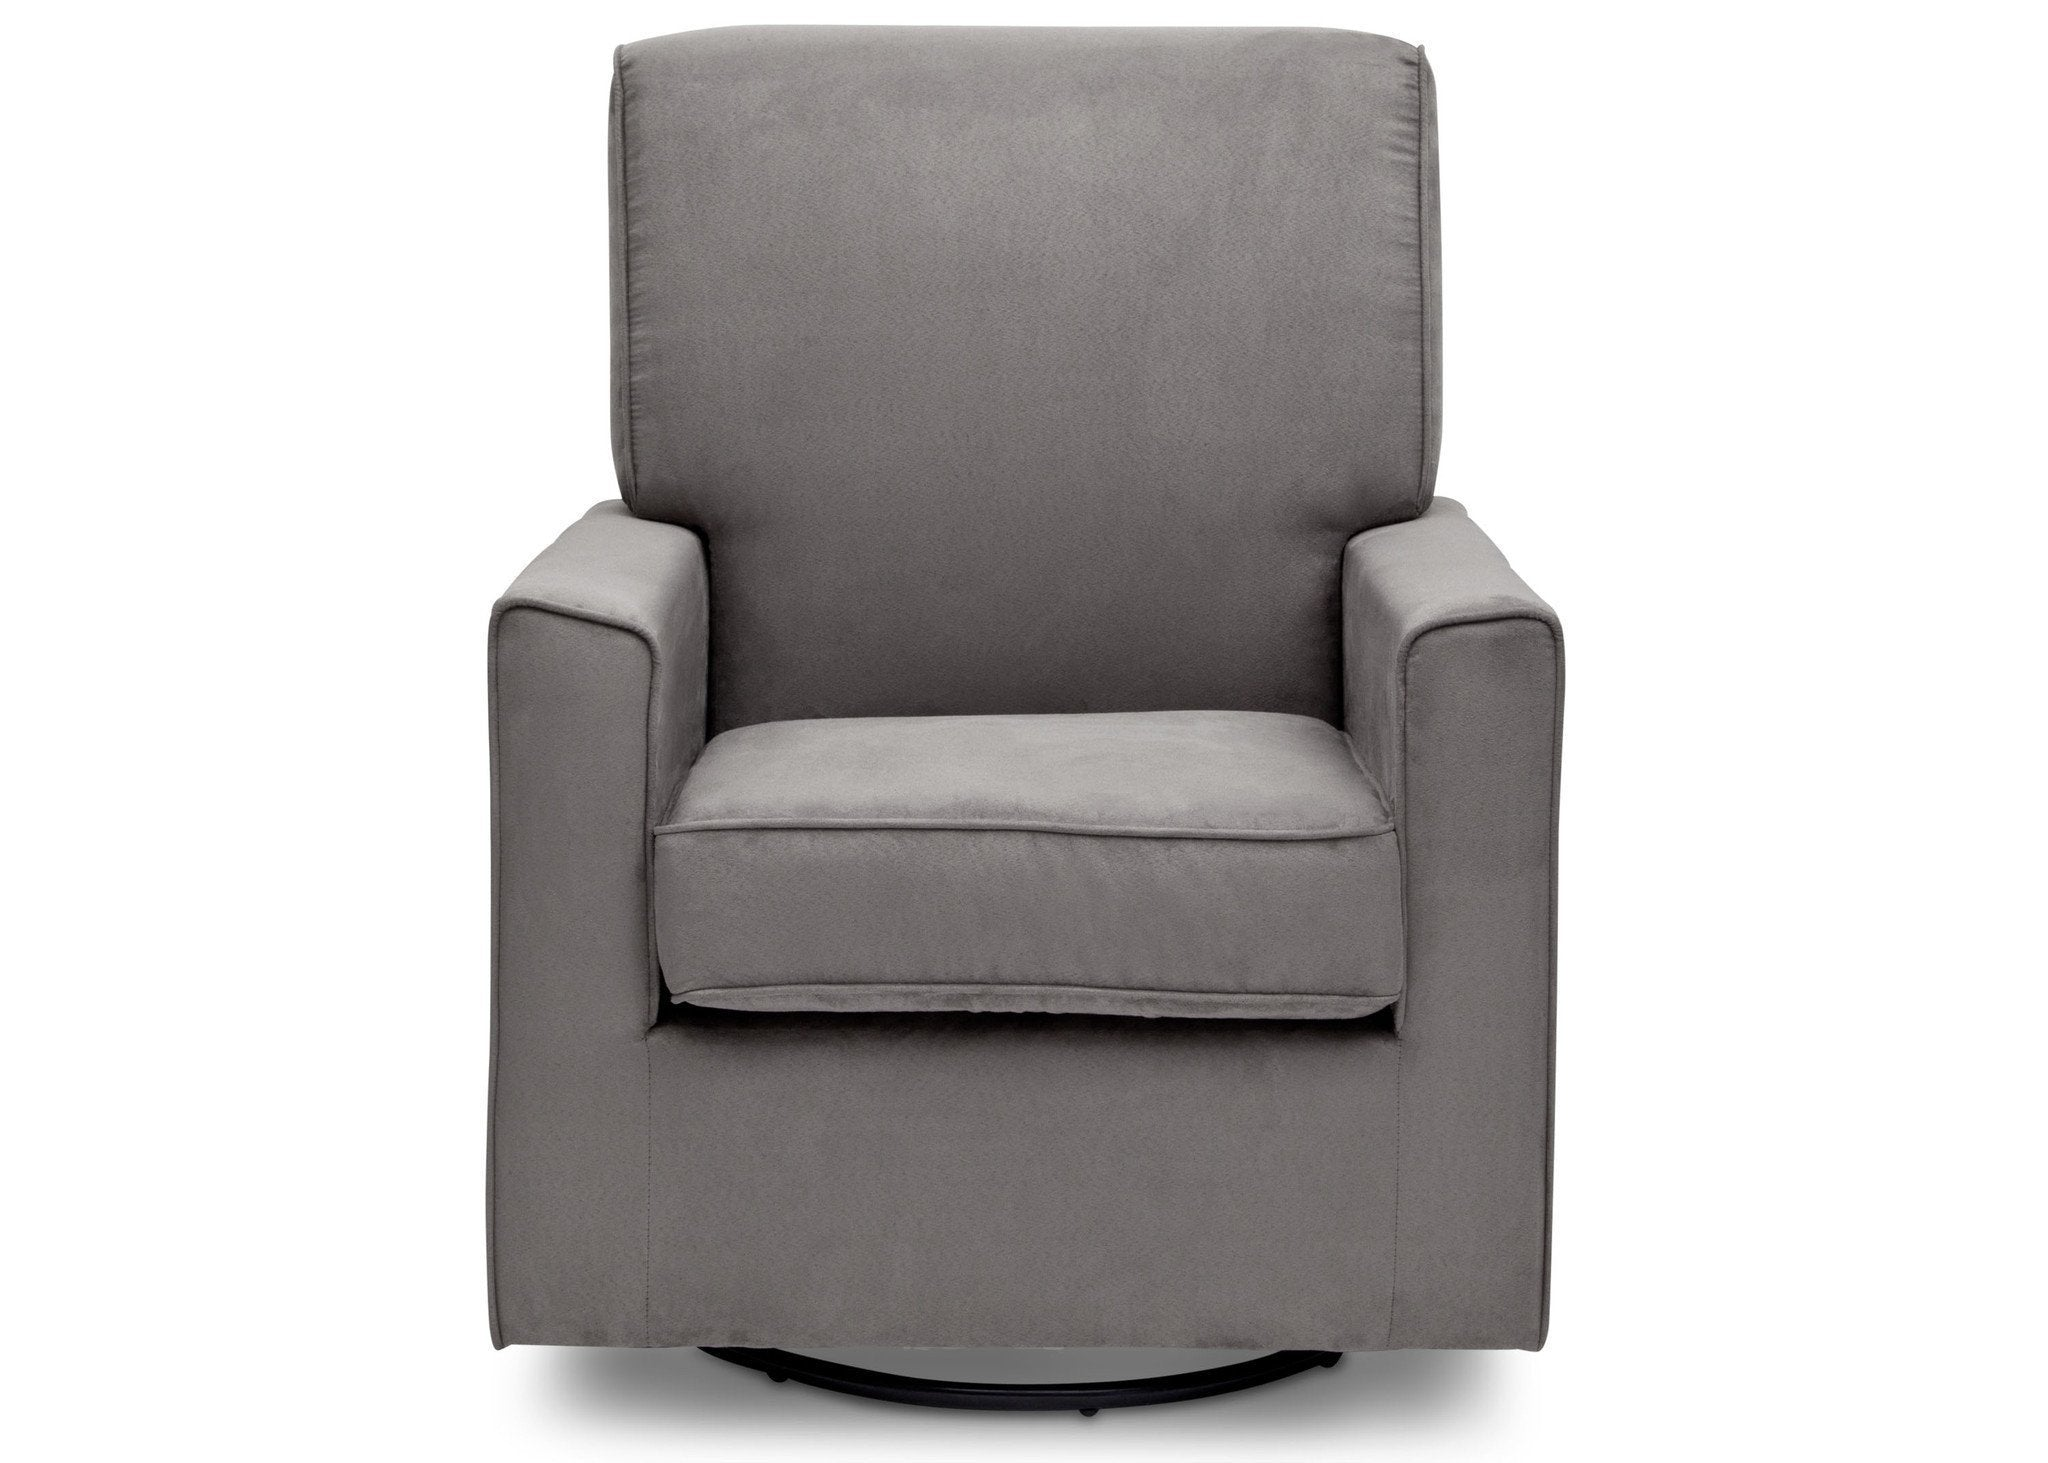 Delta Children Graphite (018) Ava Upholstered Glider Front View a2a